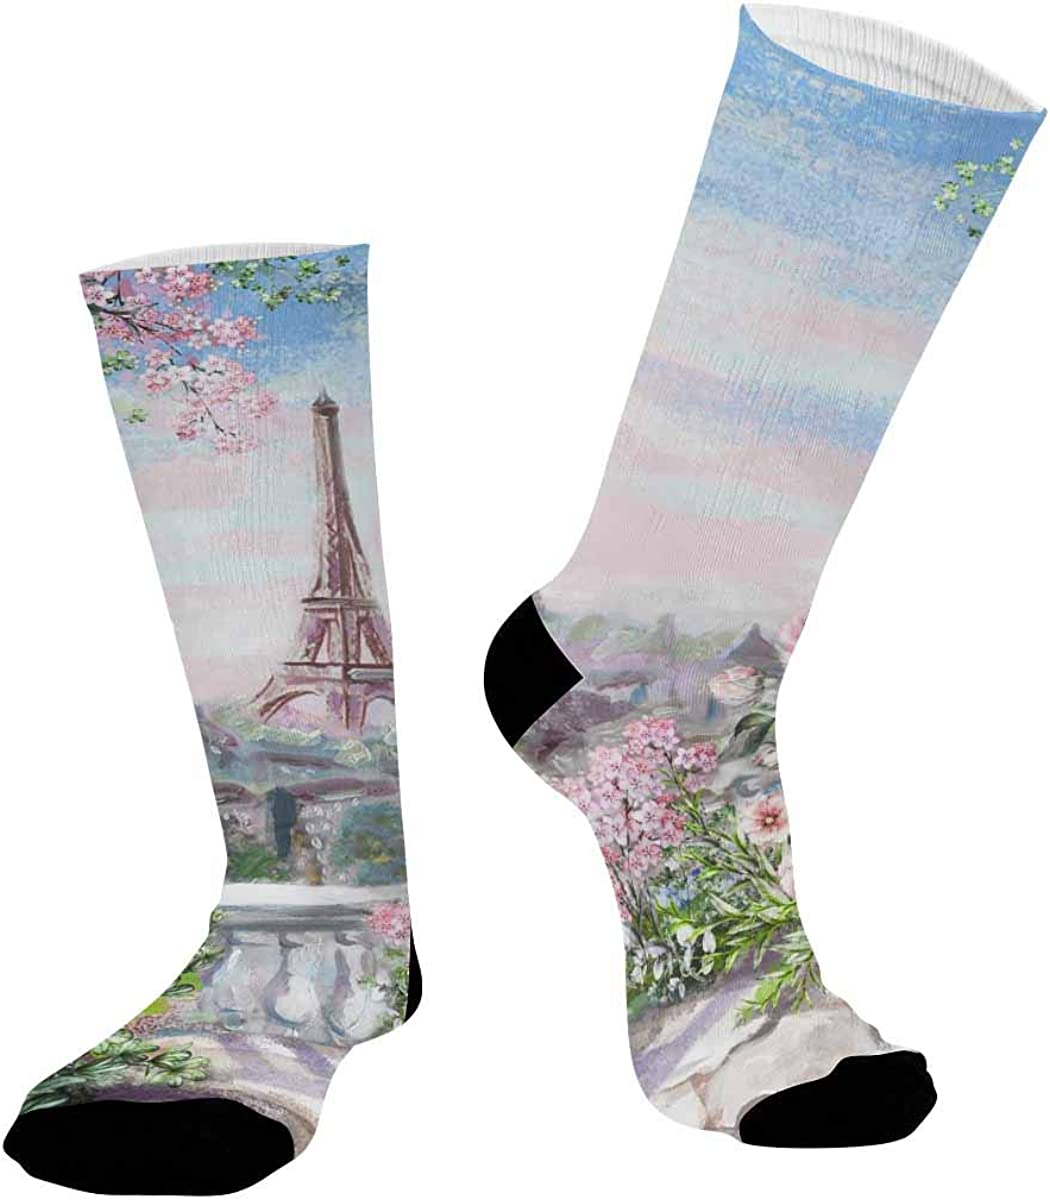 INTERESTPRINT Casual Sublimated Crew Socks Unisex Flower Rose and Eiffel Tower